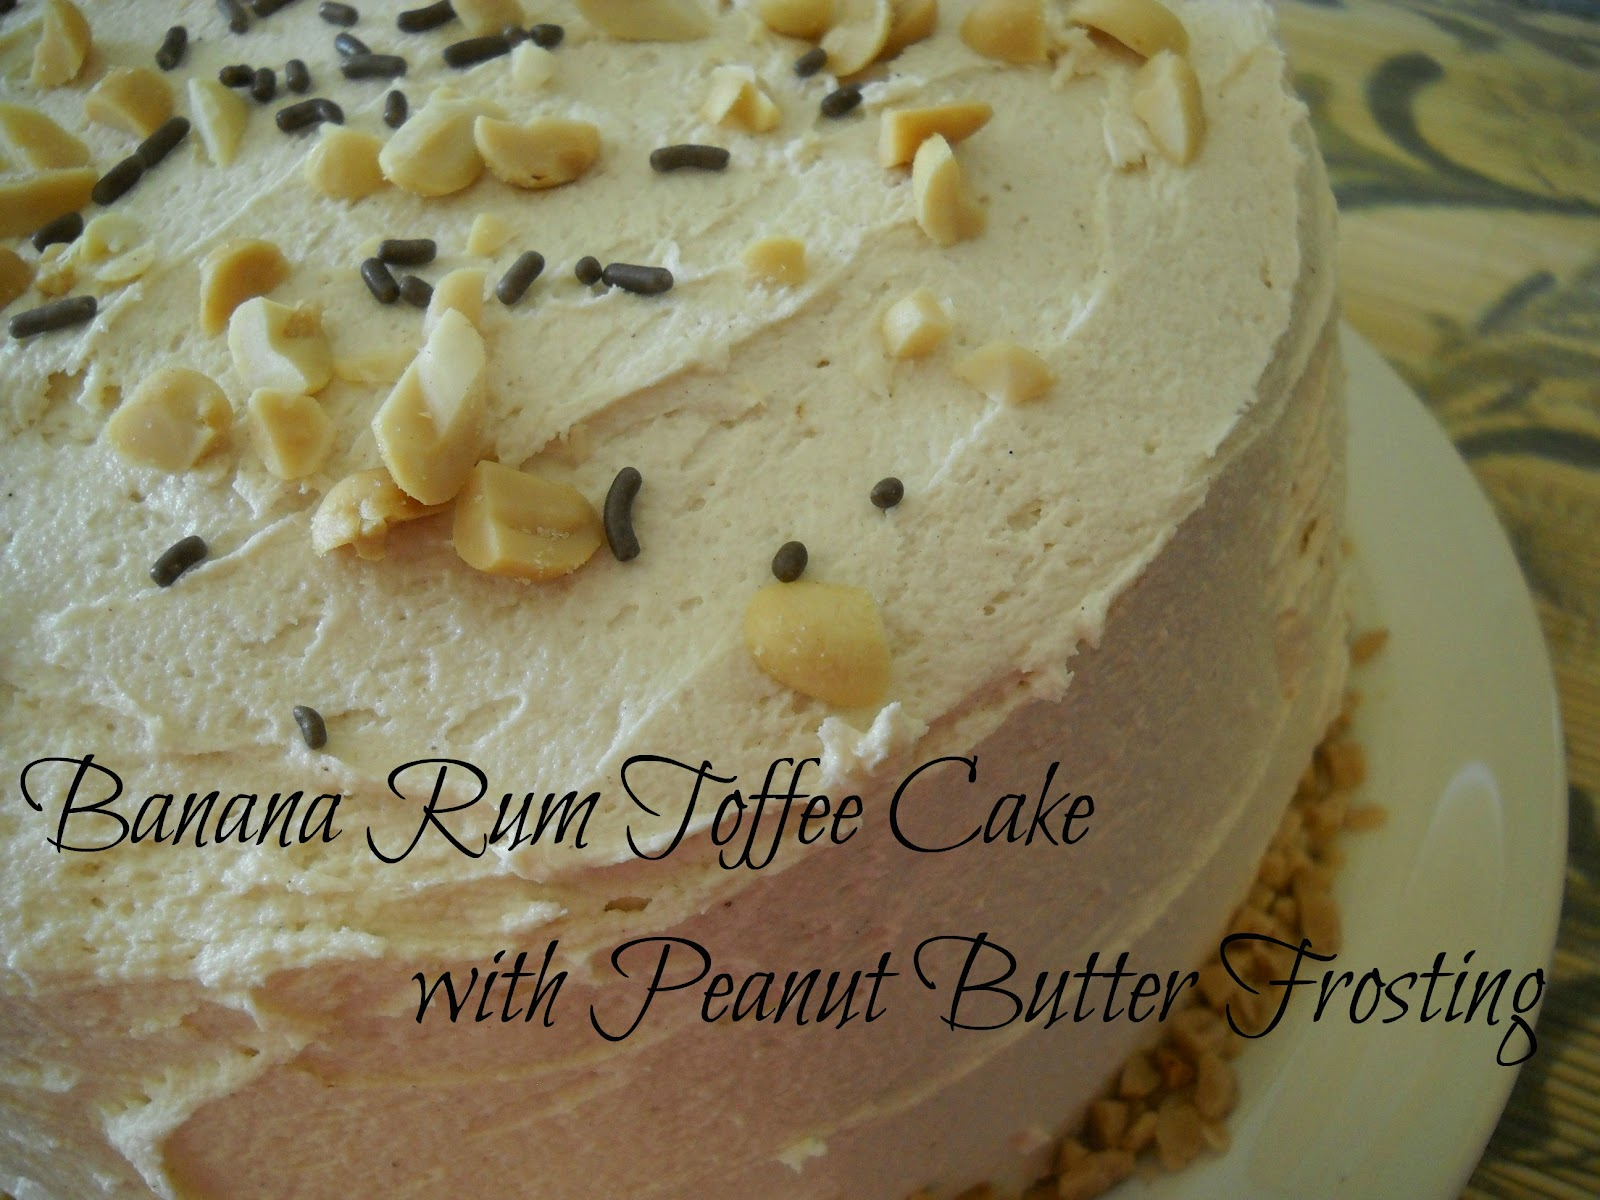 ... It With Booze!: Banana Rum Toffee Cake with Peanut Butter Frosting